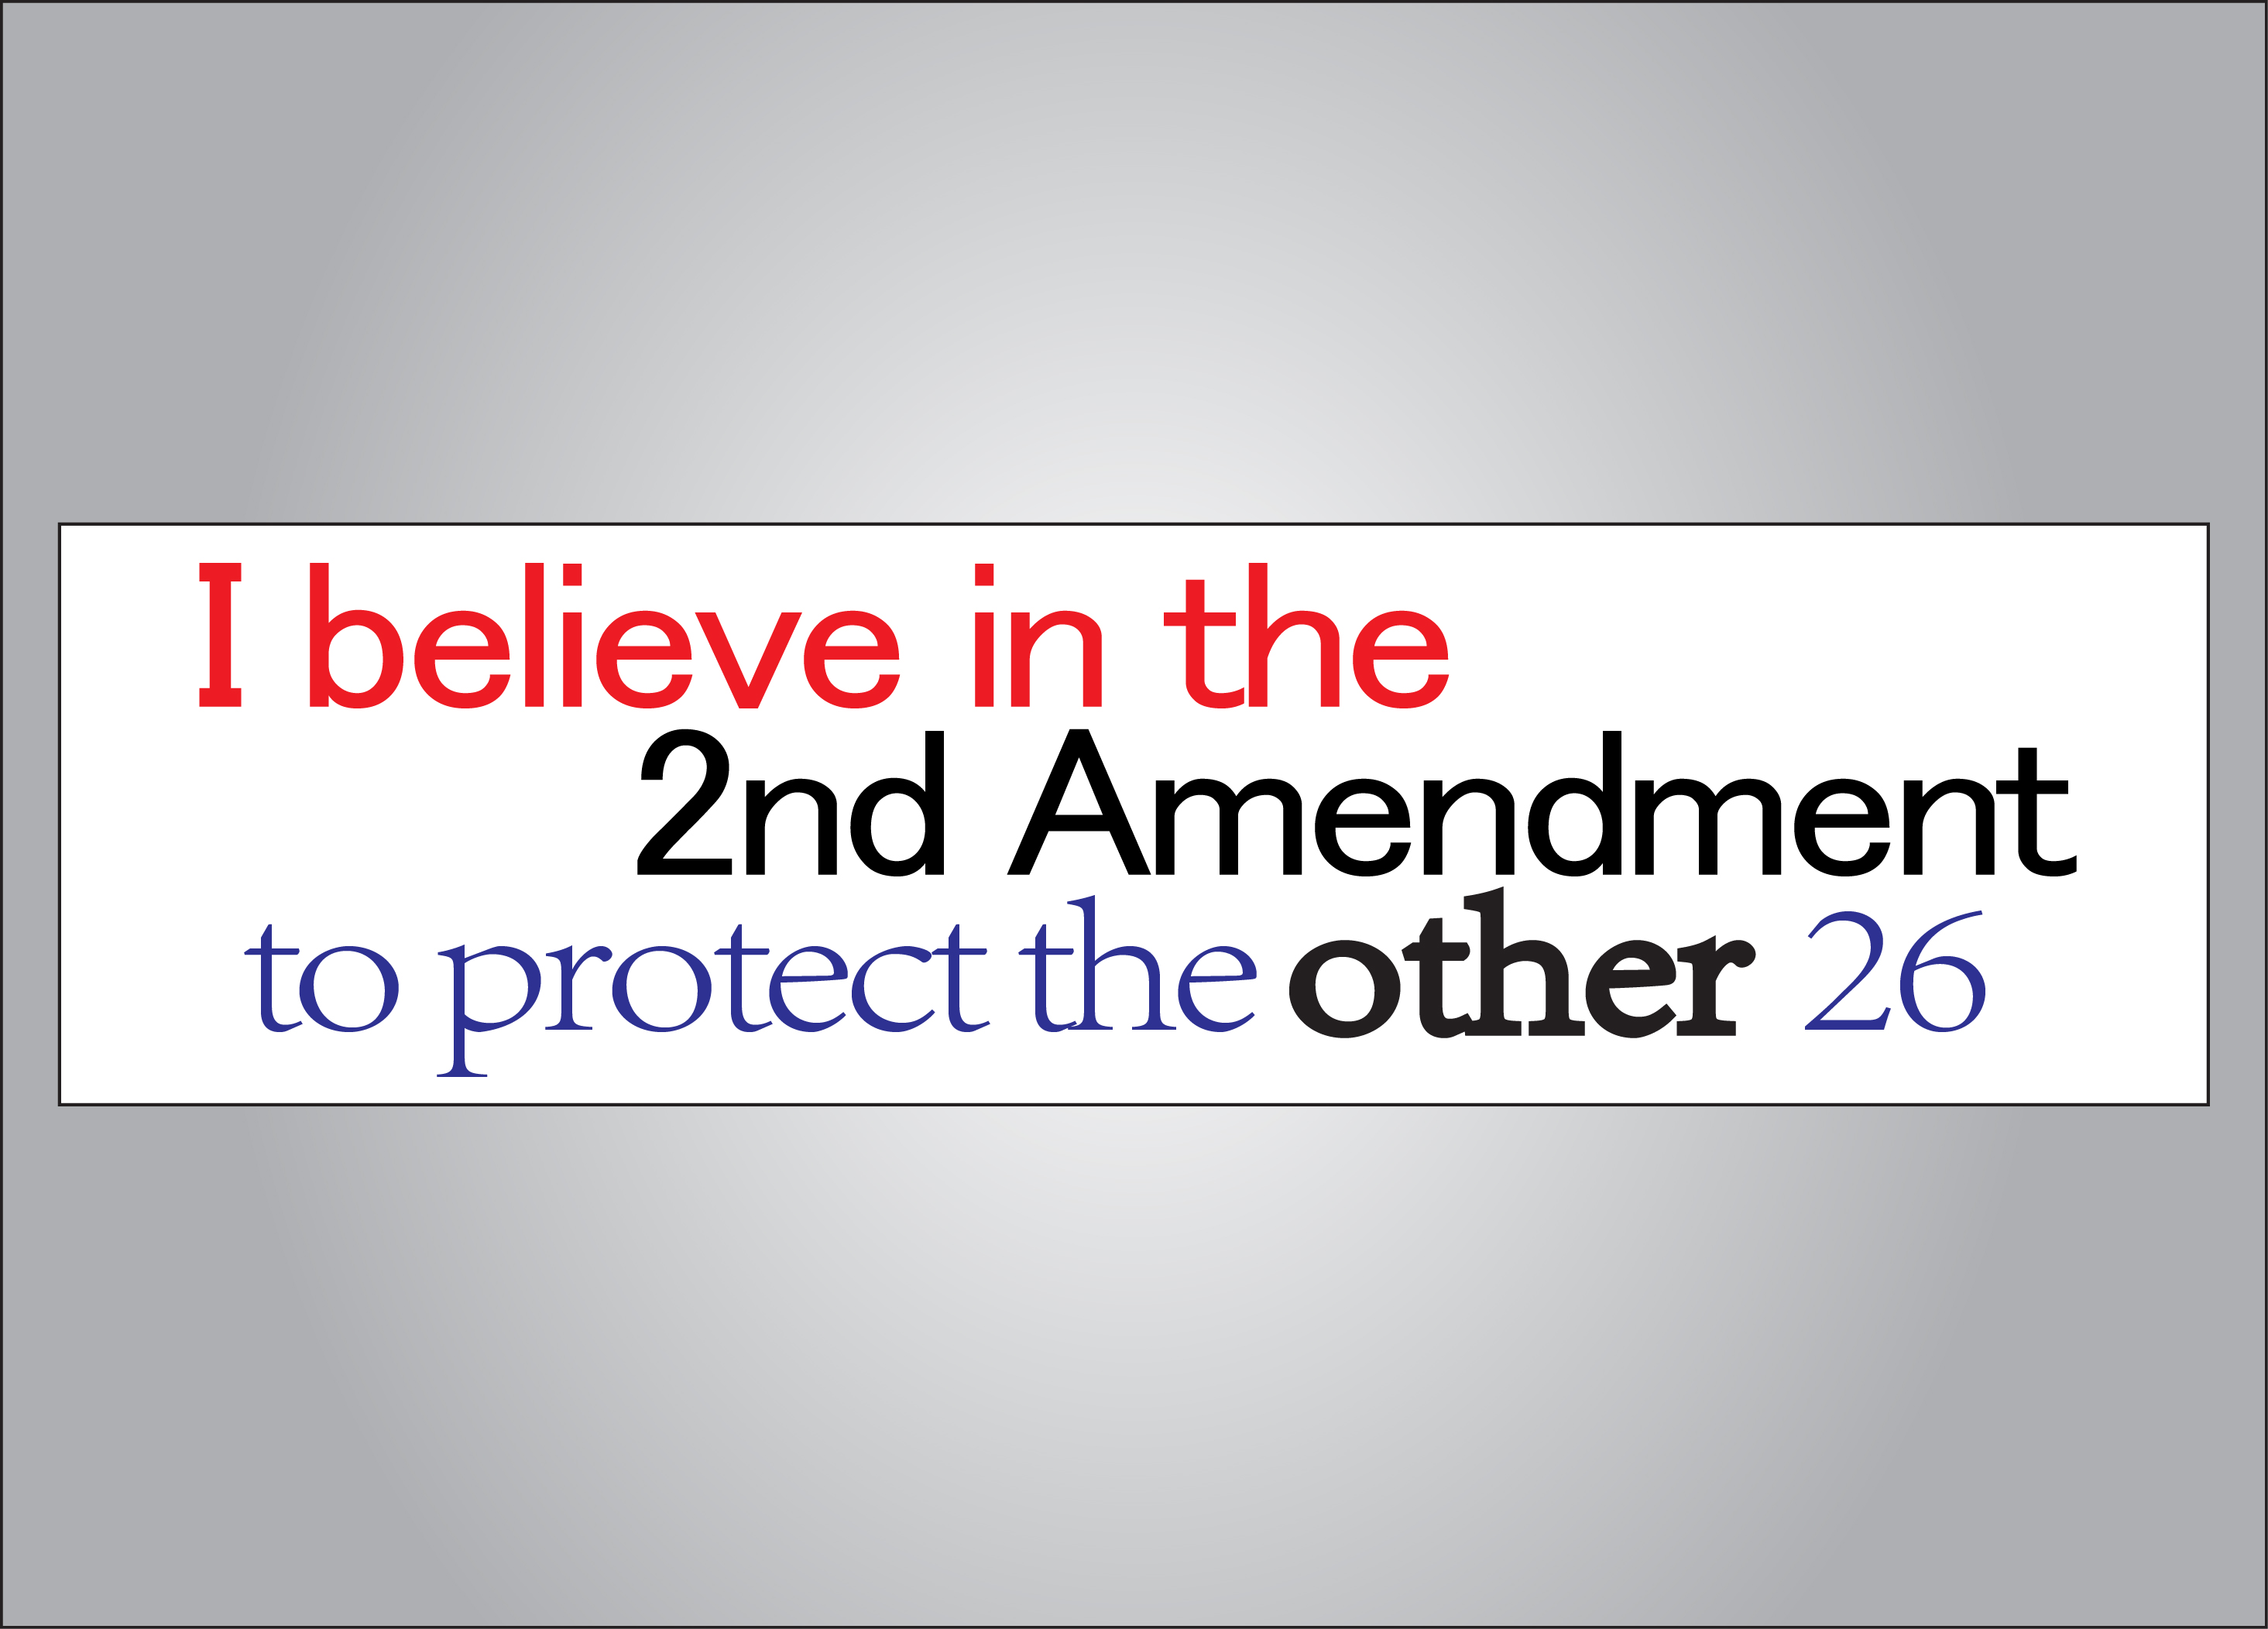 Make a statement on gun ownership with this 2nd amendment bumper sticker.